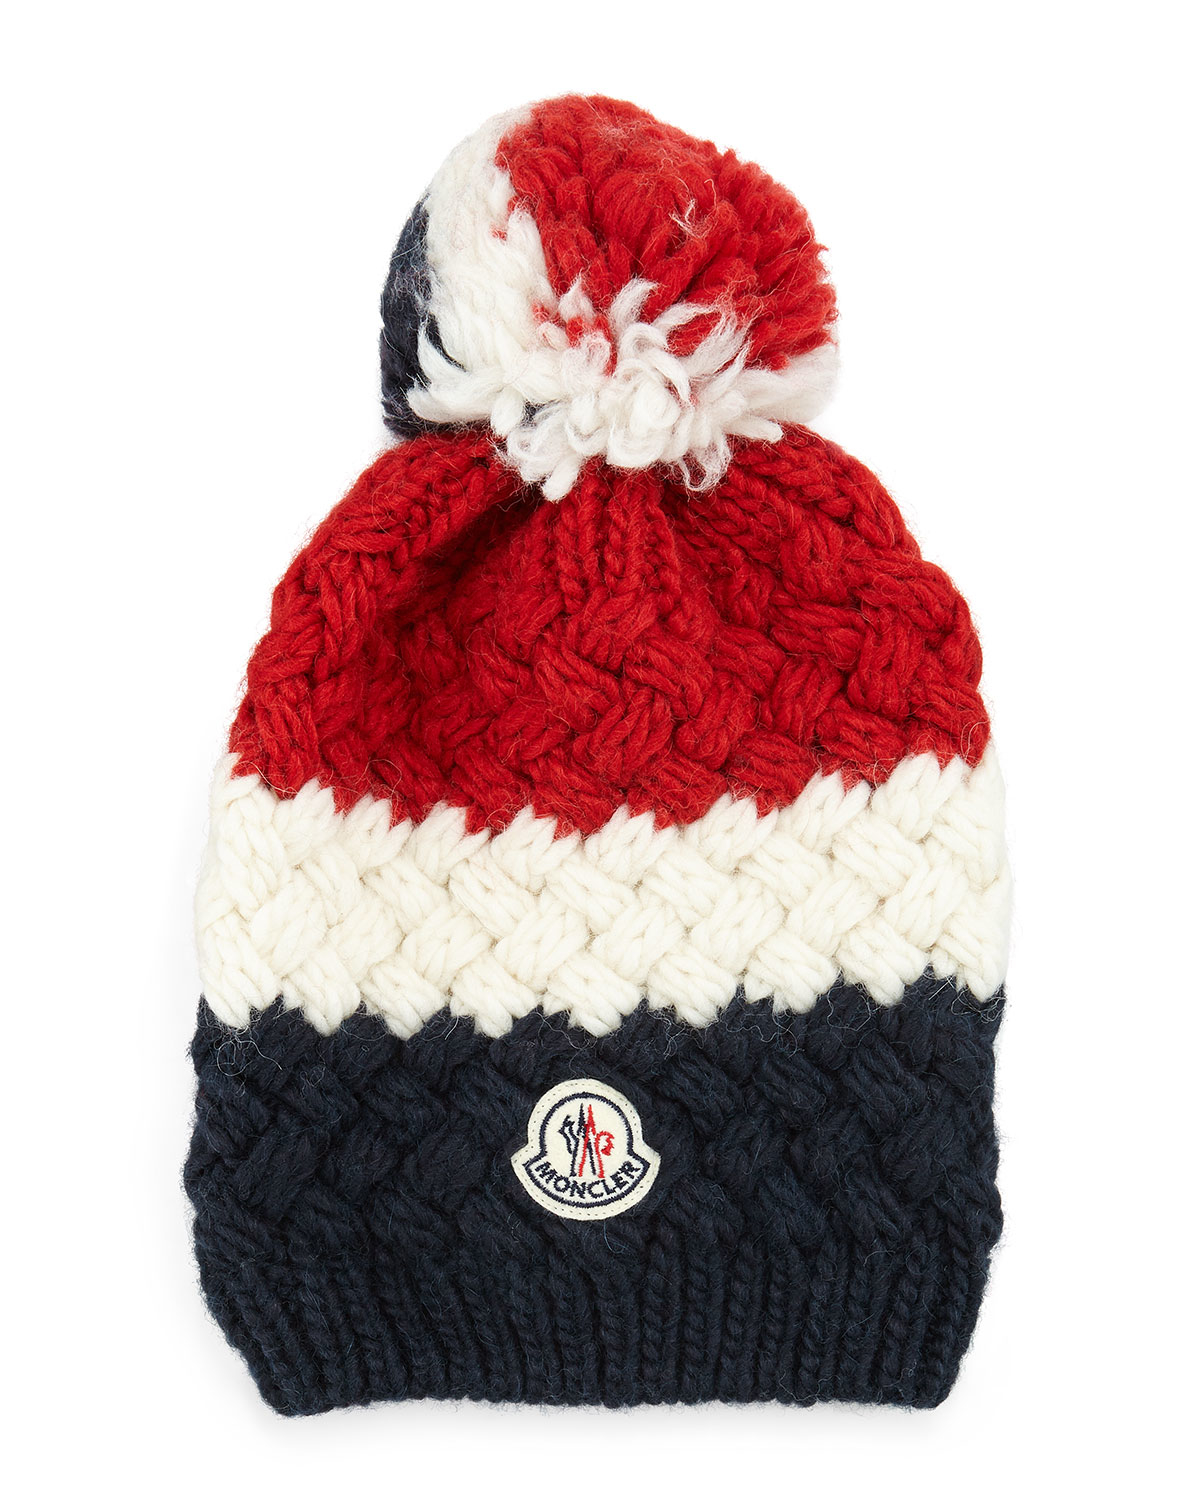 29afb24ed Snap Moncler Bobble Top Beanie in Red Lyst photos on Pinterest